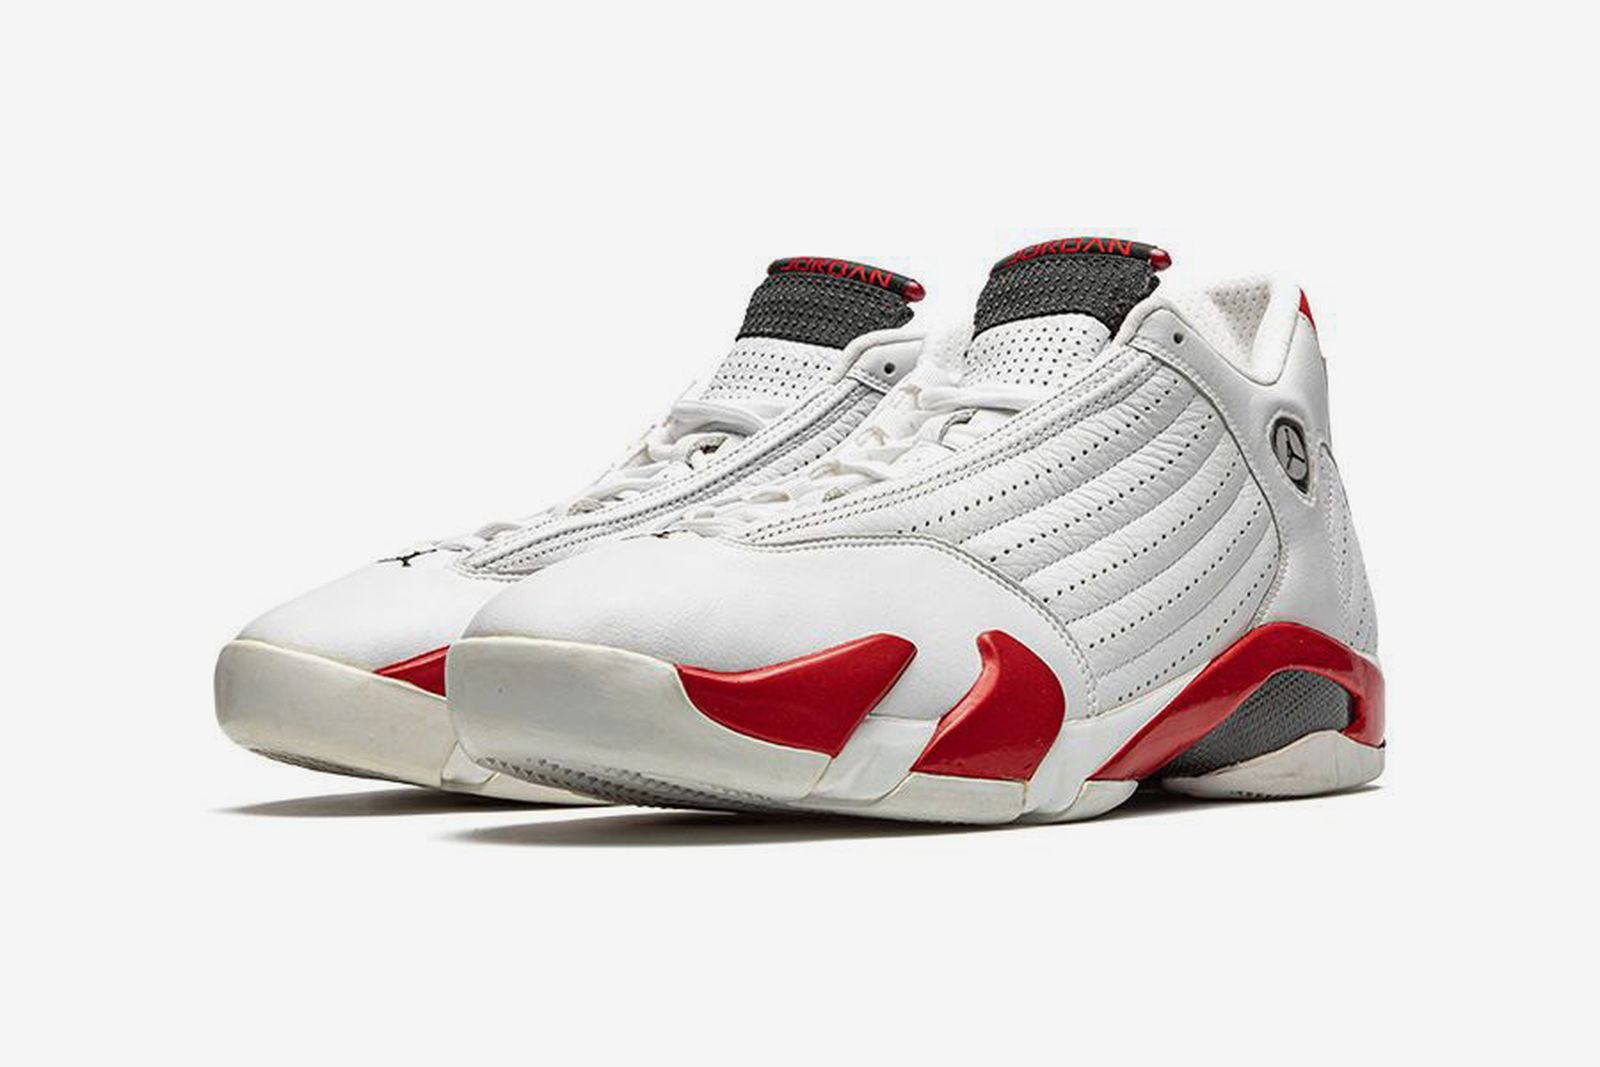 Air Jordan 14 Chicago